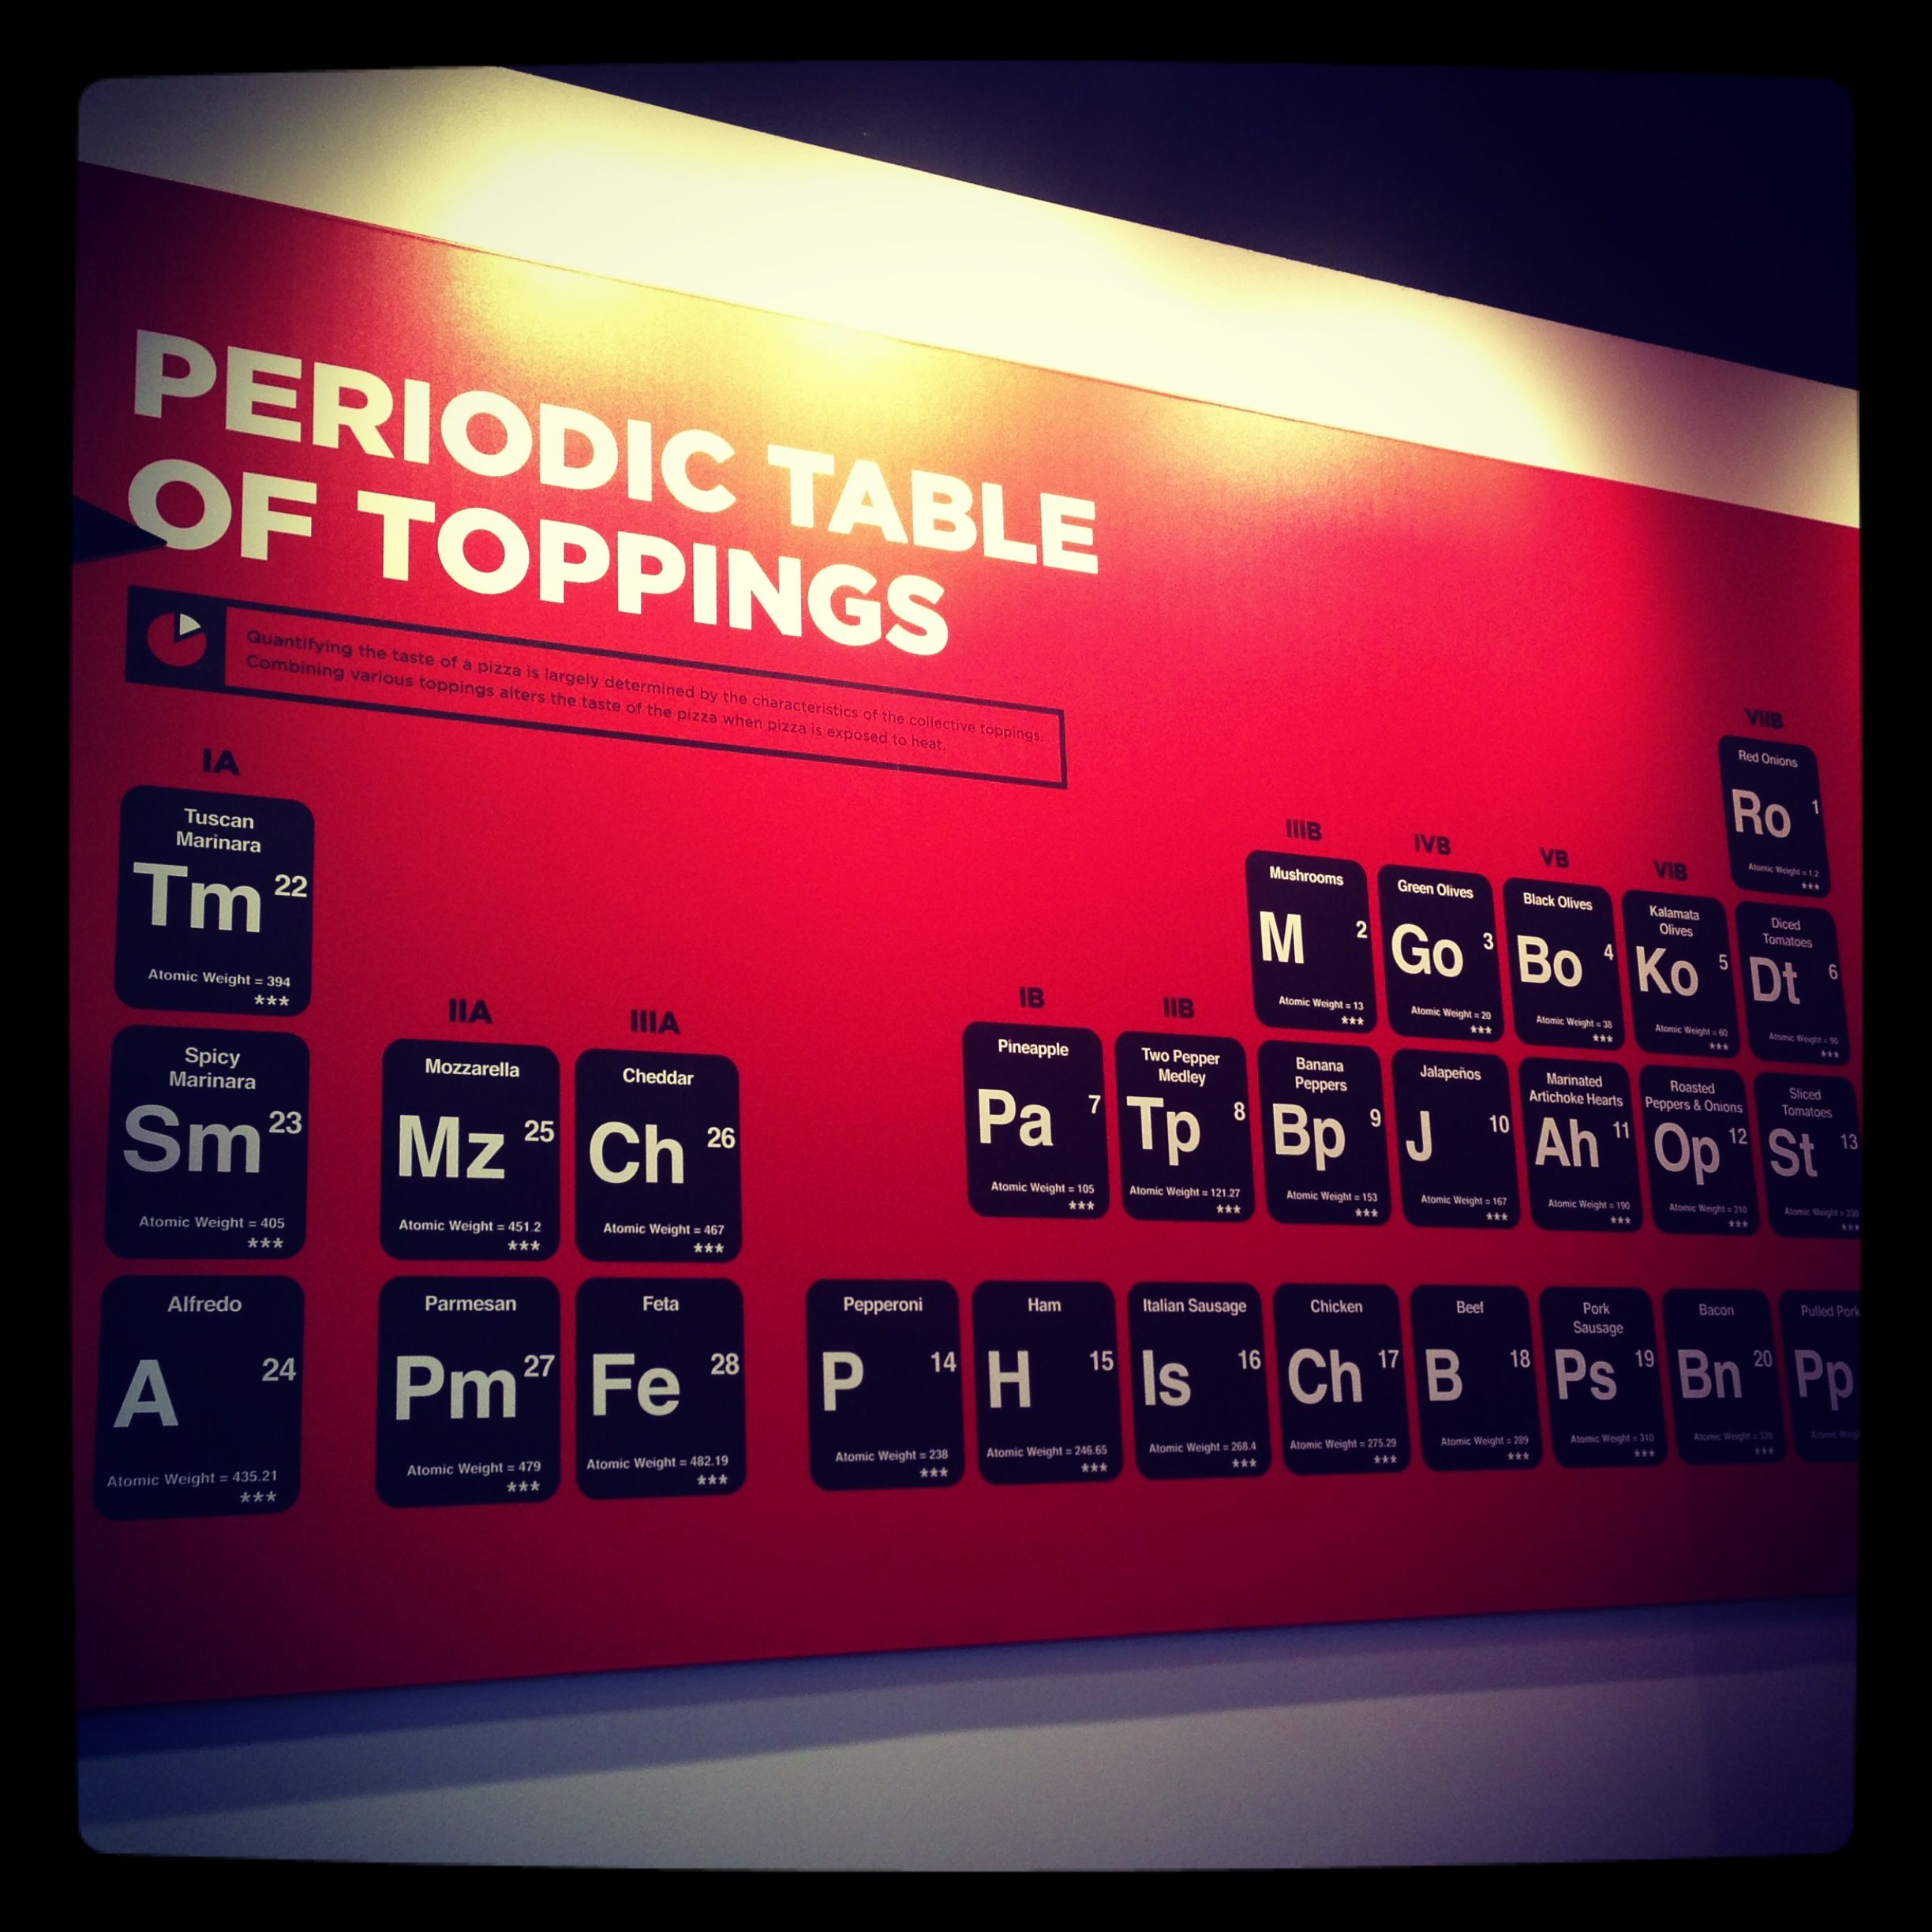 Periodic table of pizza toppings instagrams pinterest periodic table of pizza toppings gamestrikefo Choice Image